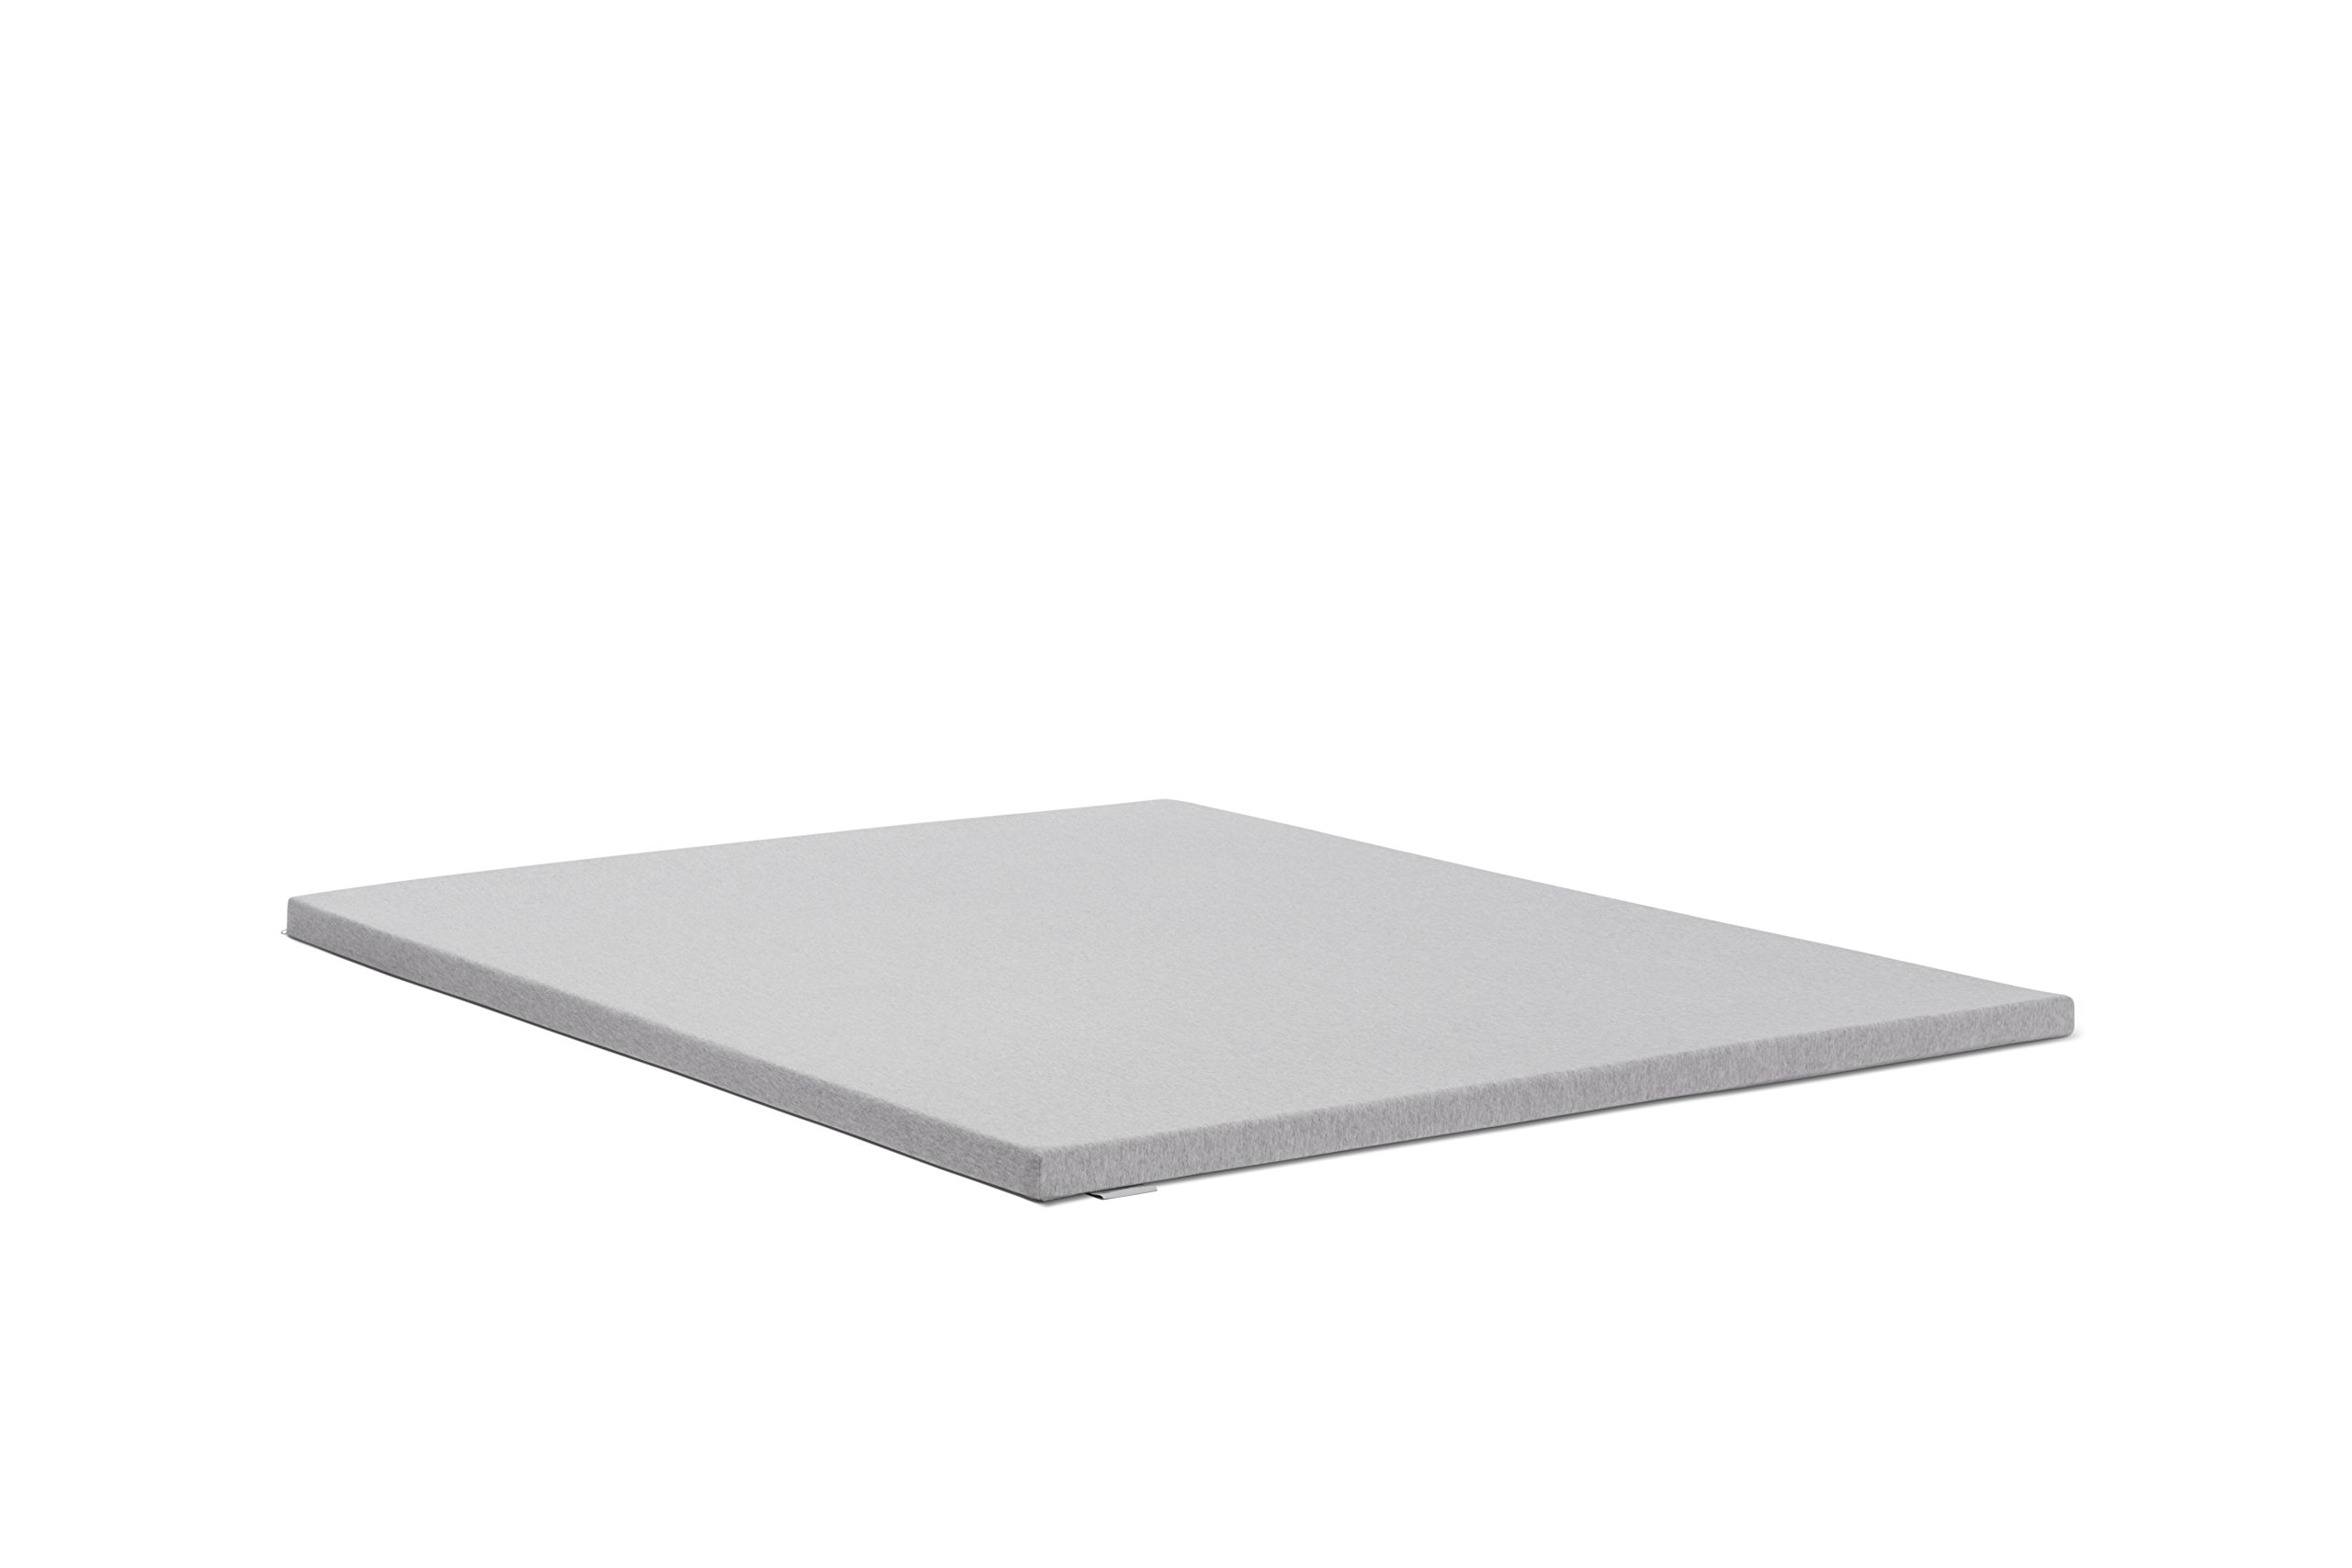 Tuft & Needle Mattress Topper, Queen, Grey by Tuft & Needle